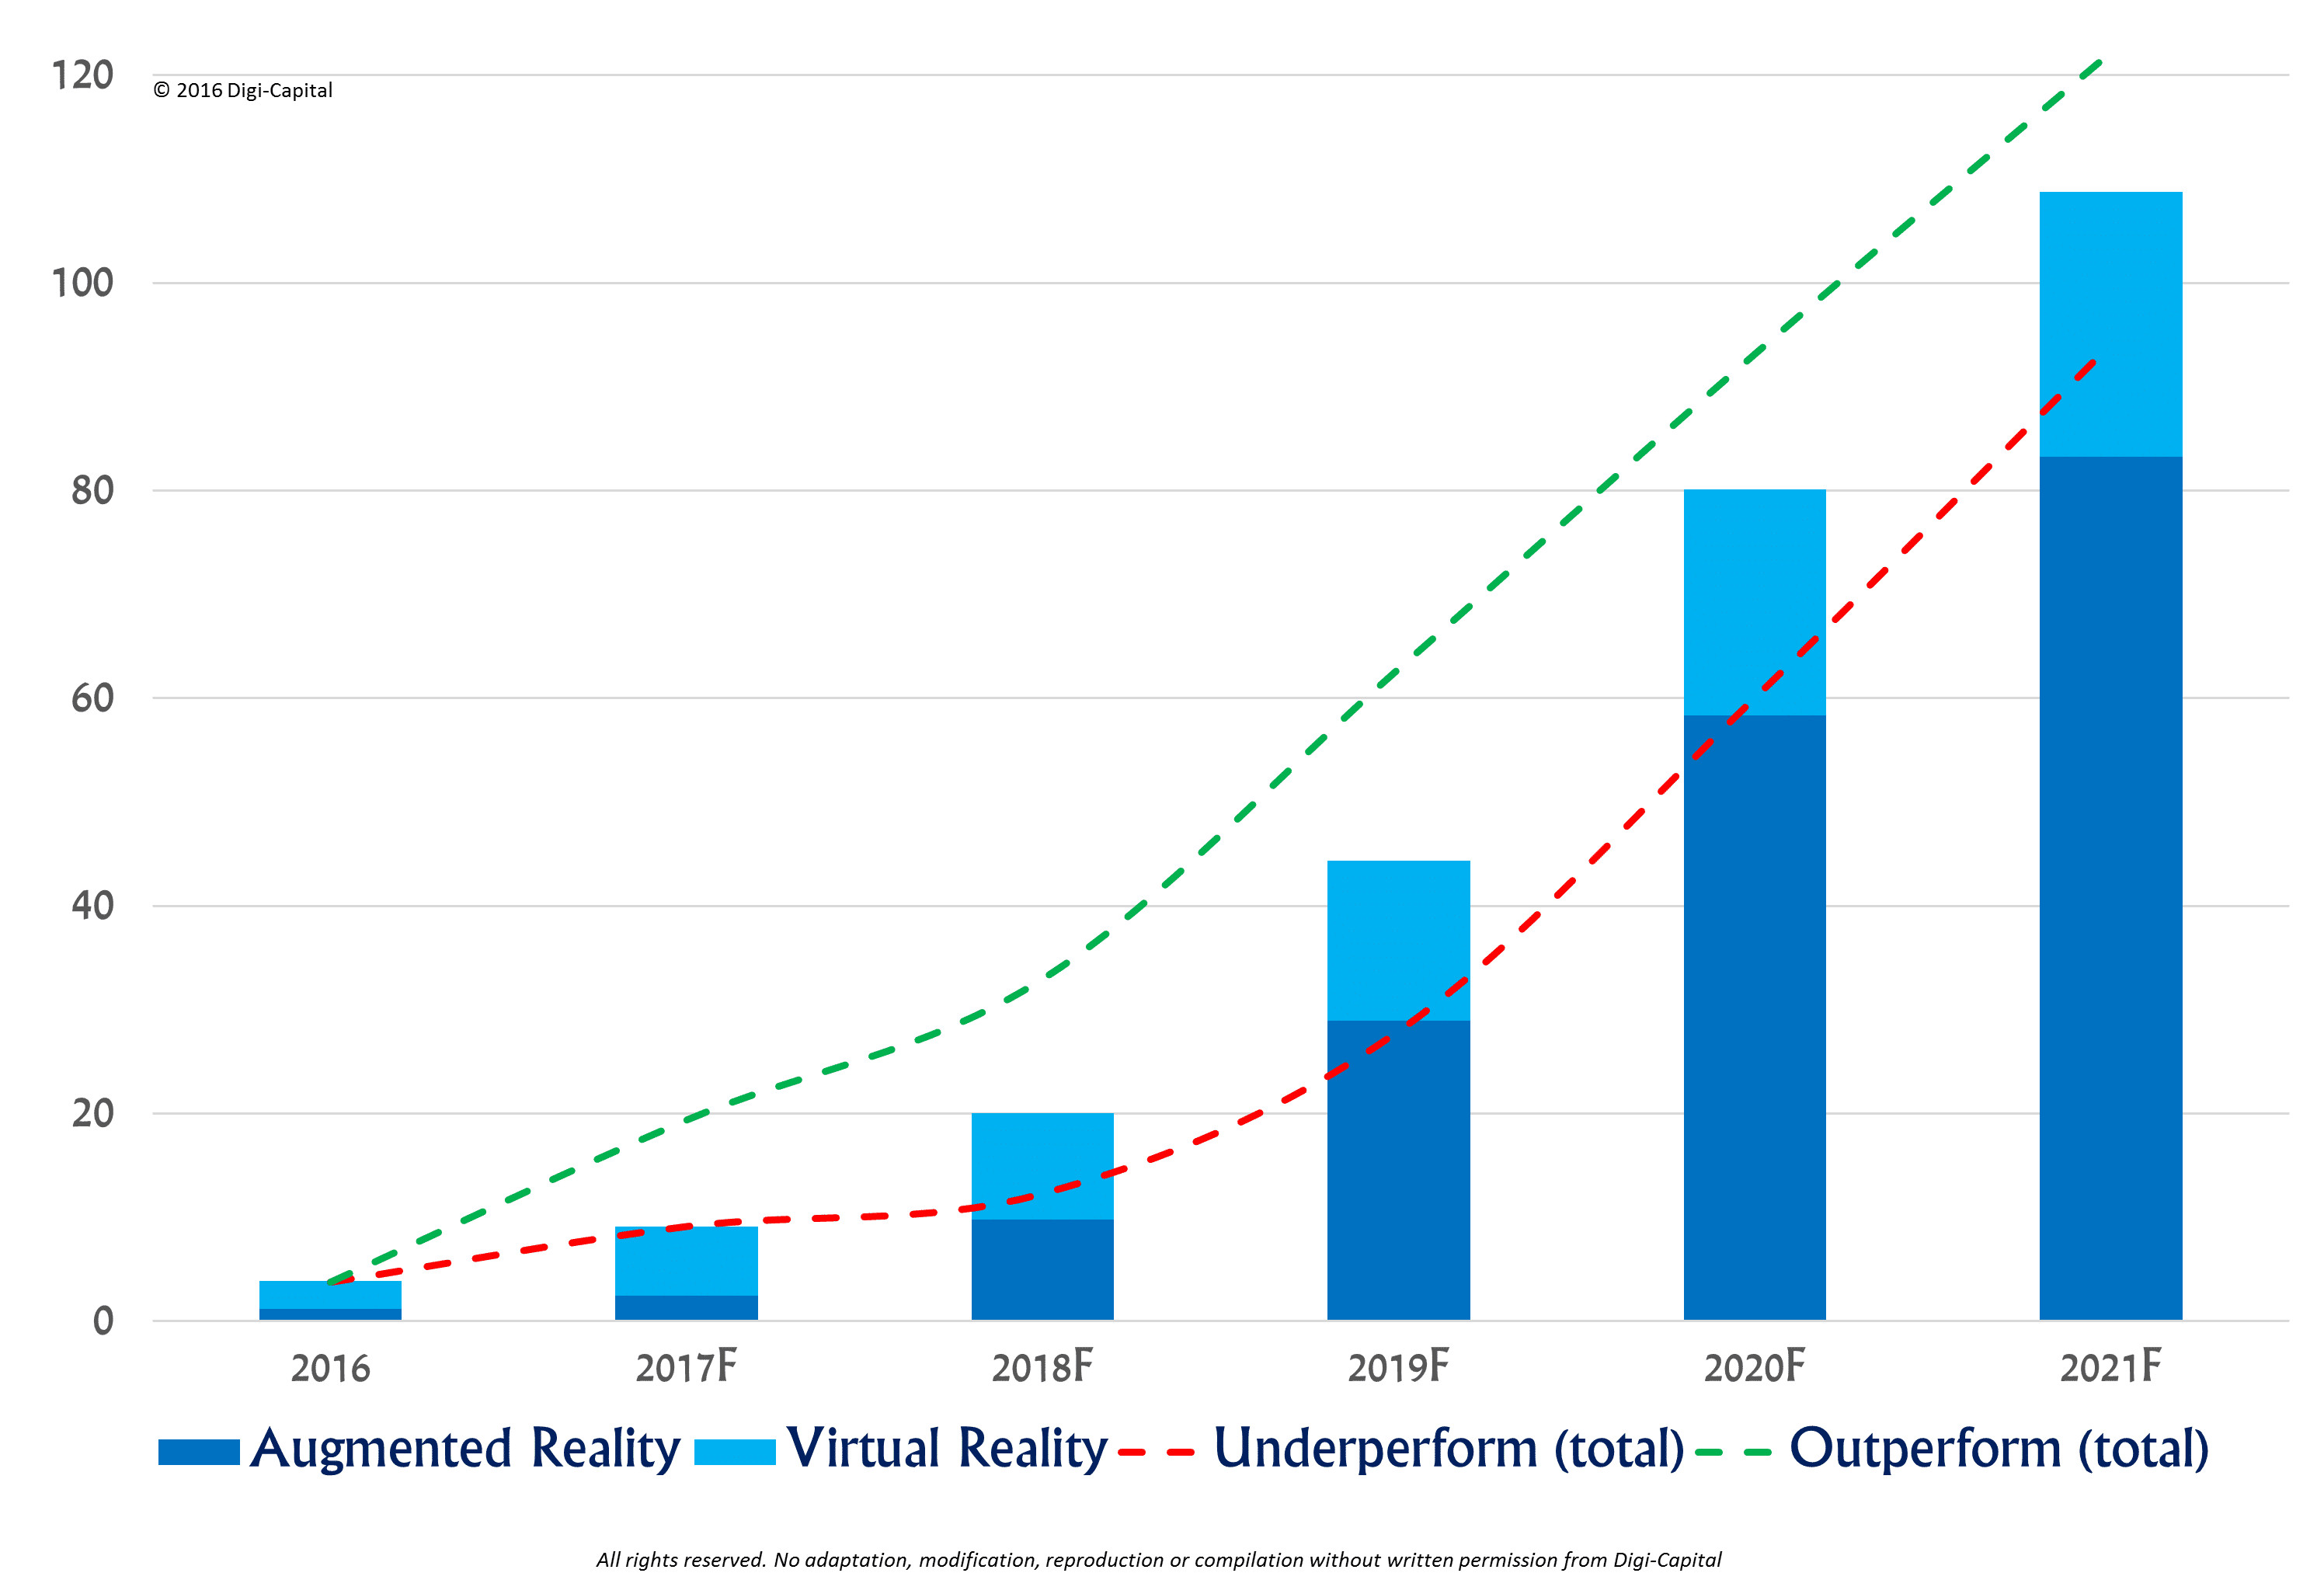 VR/AR installed base (M). Source: Digi-Capital